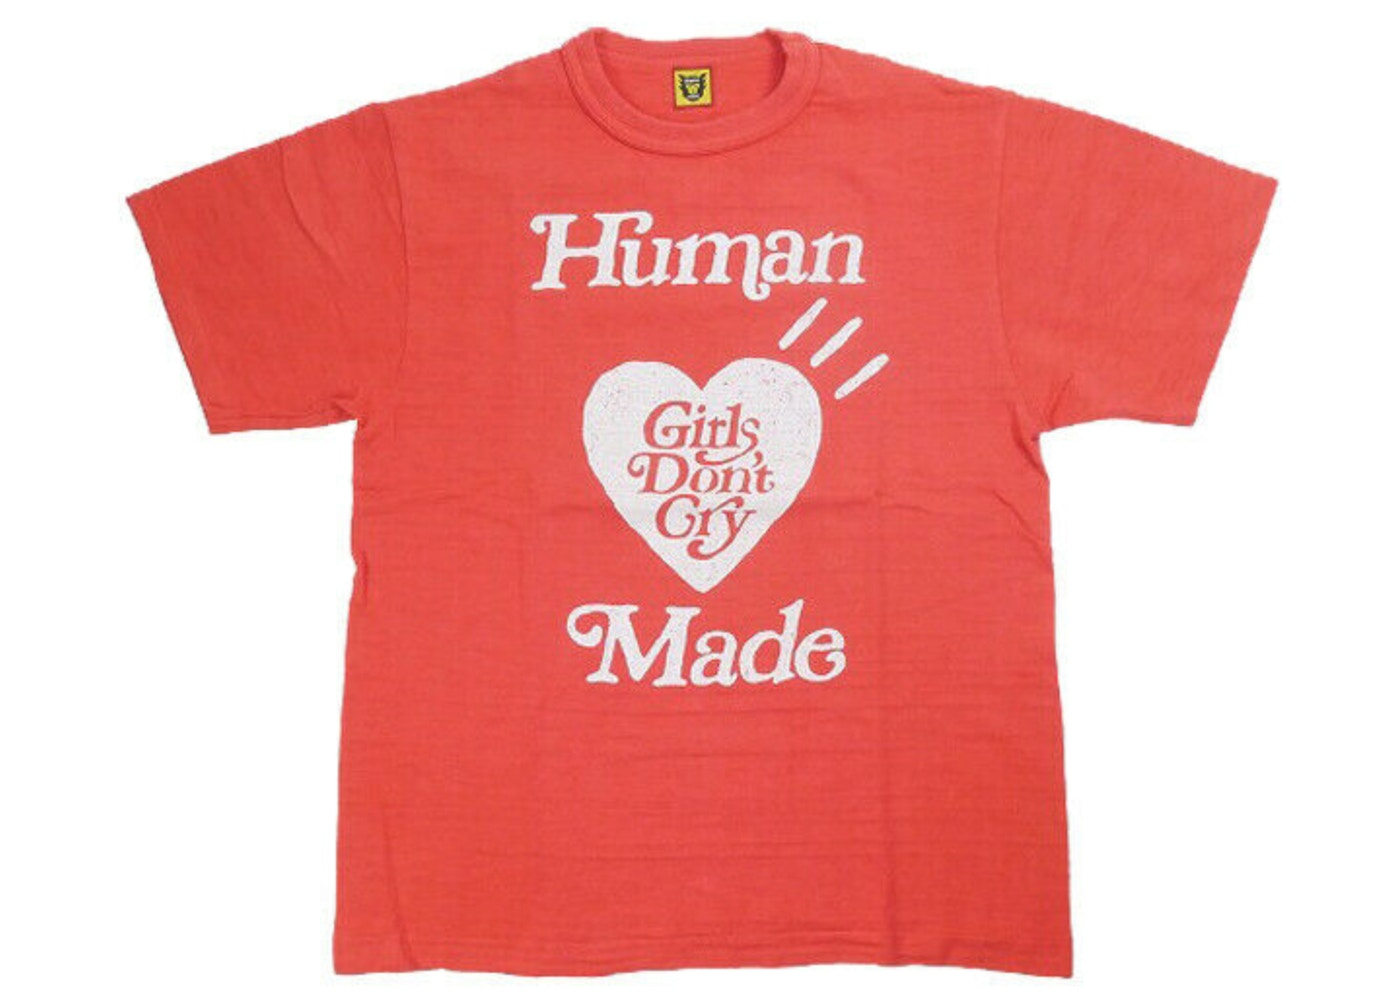 52c1c2e0 Human Made x Girls Don't Cry Tee 1 Red - SS19